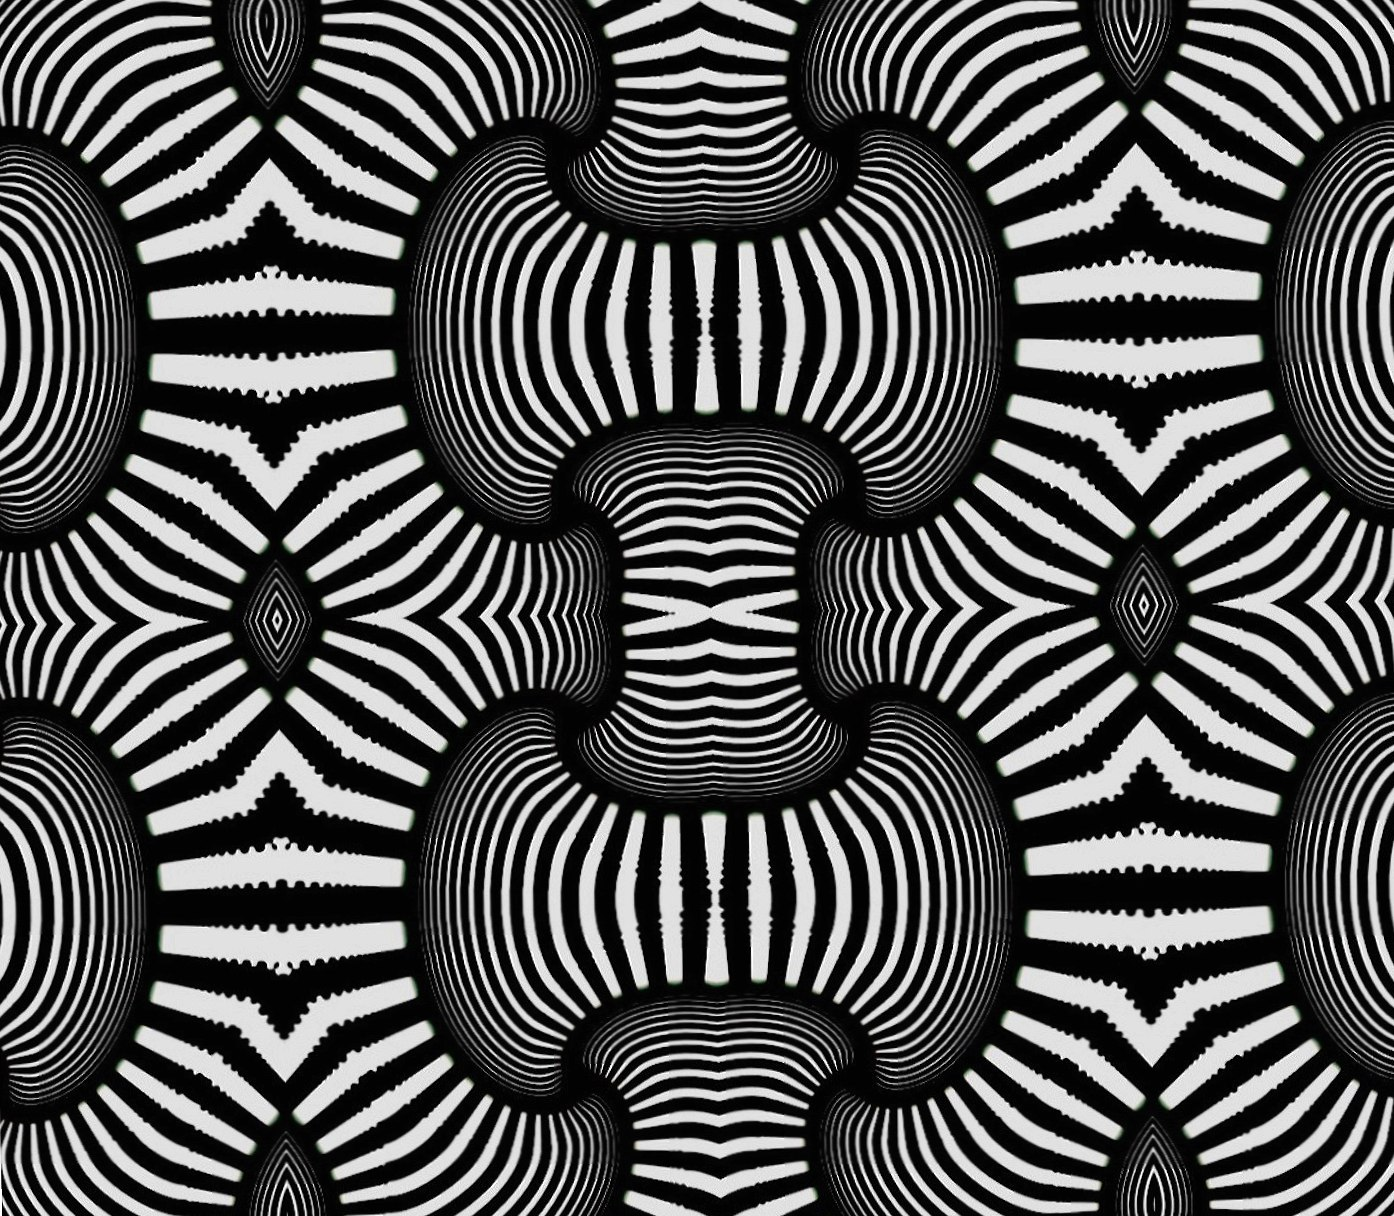 Trippy black white at 1600 x 1200 size wallpapers HD quality